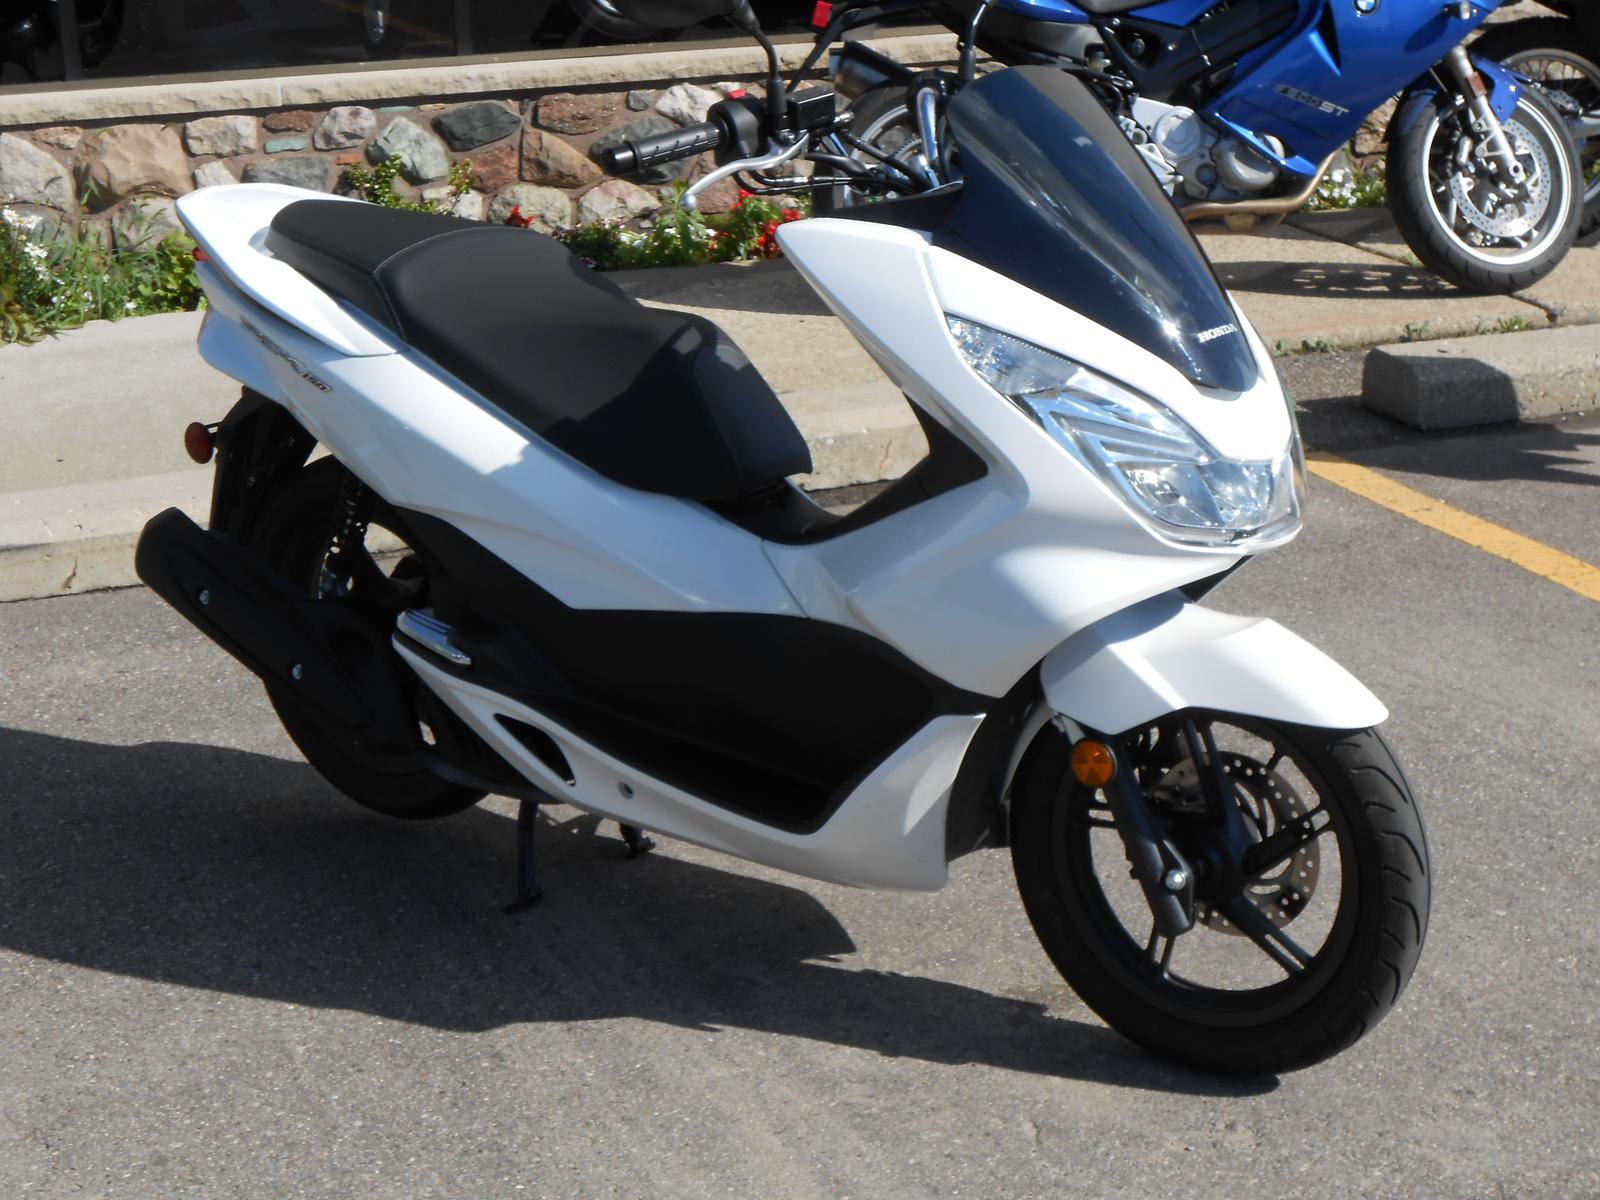 honda pcx125 motorcycles for sale on auto trader bikes. Black Bedroom Furniture Sets. Home Design Ideas